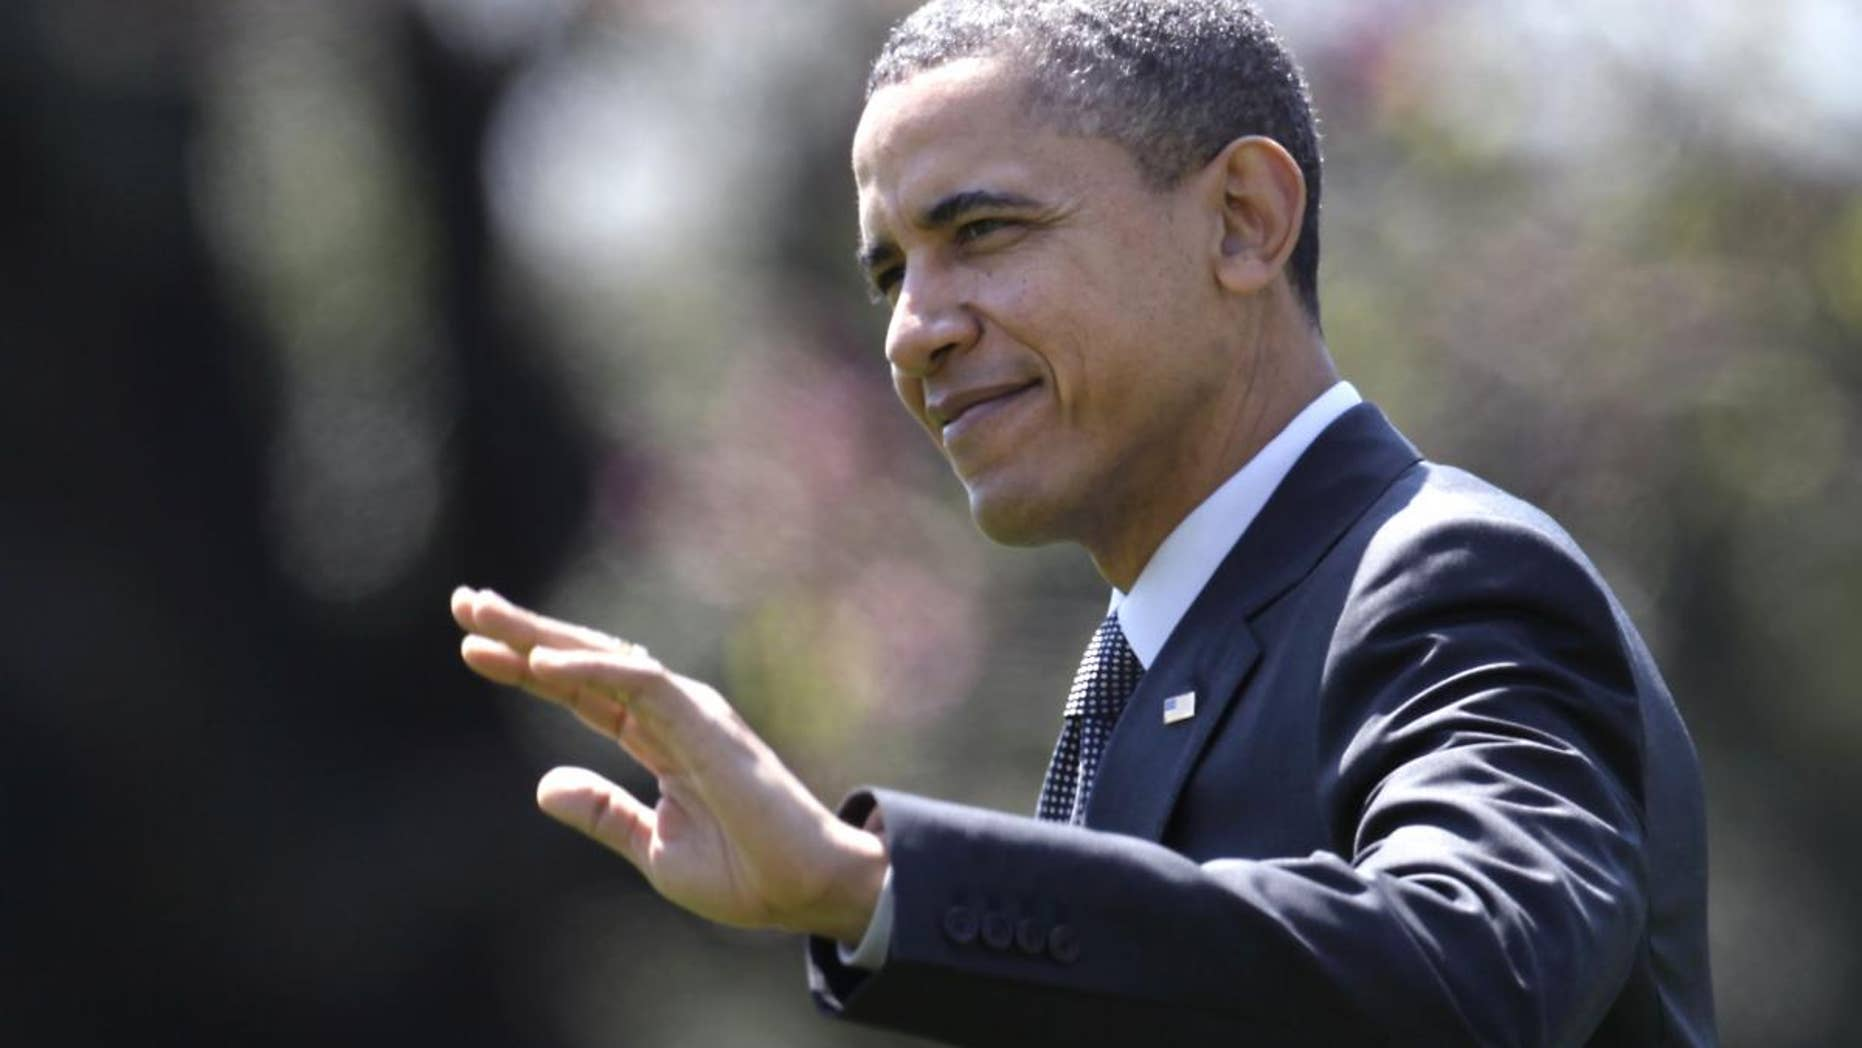 President Barack Obama waves as he walks across the South Lawn of the White House in Washington, Wednesday, April 6, 2011, to board Marine One as he travels to Pennsylvania. (AP Photo/Carolyn Kaster)